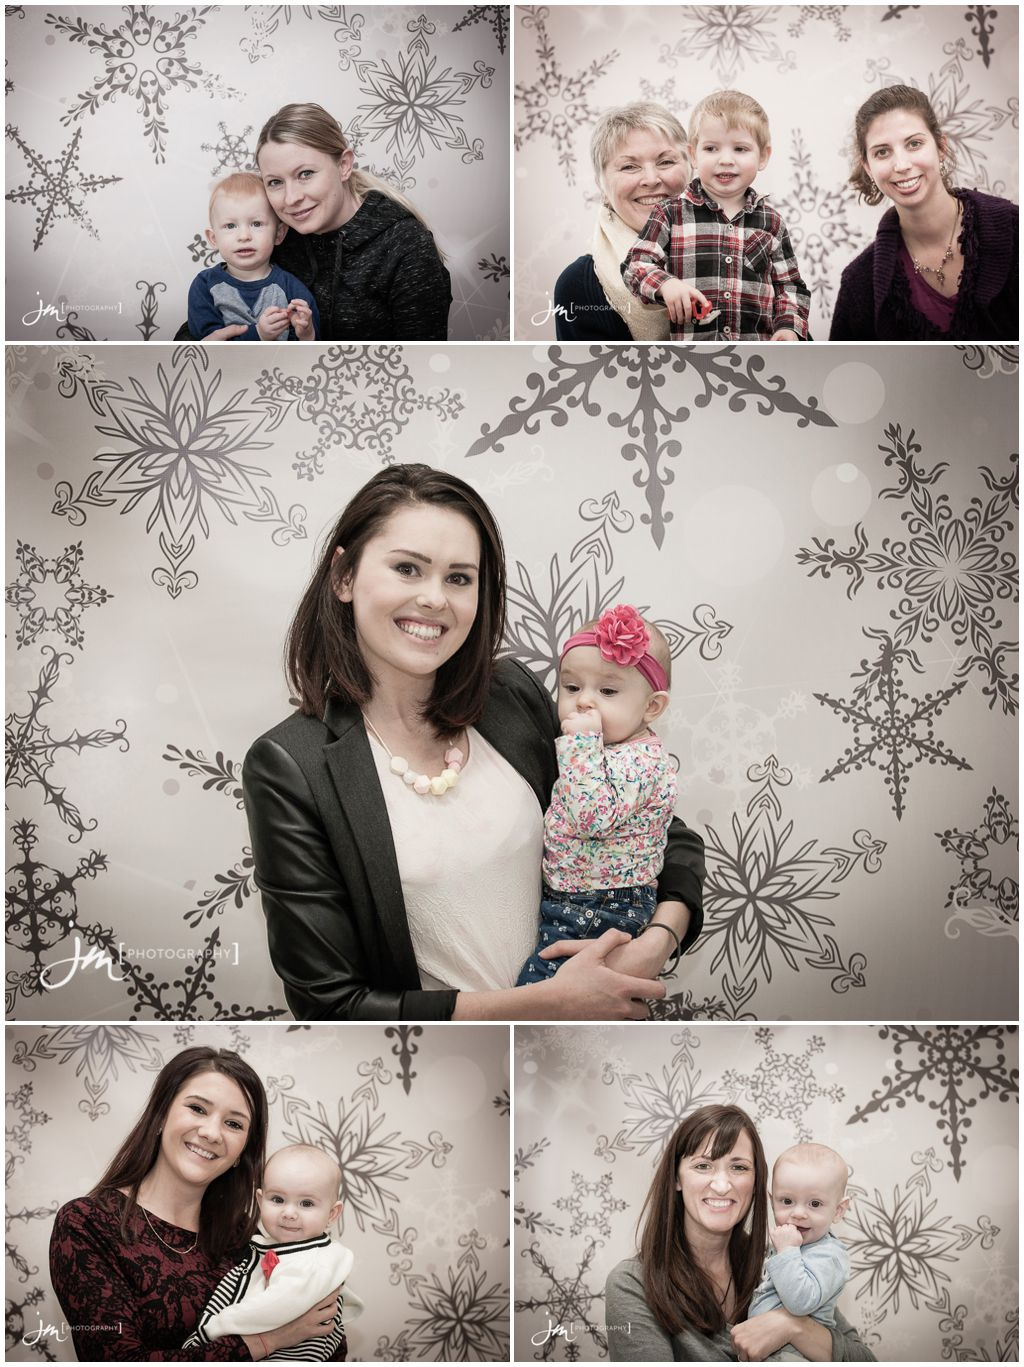 151202_2-Mommy-Connections-Calgary-Newborn-Photographers-JM_Photography-Amy-Cheng